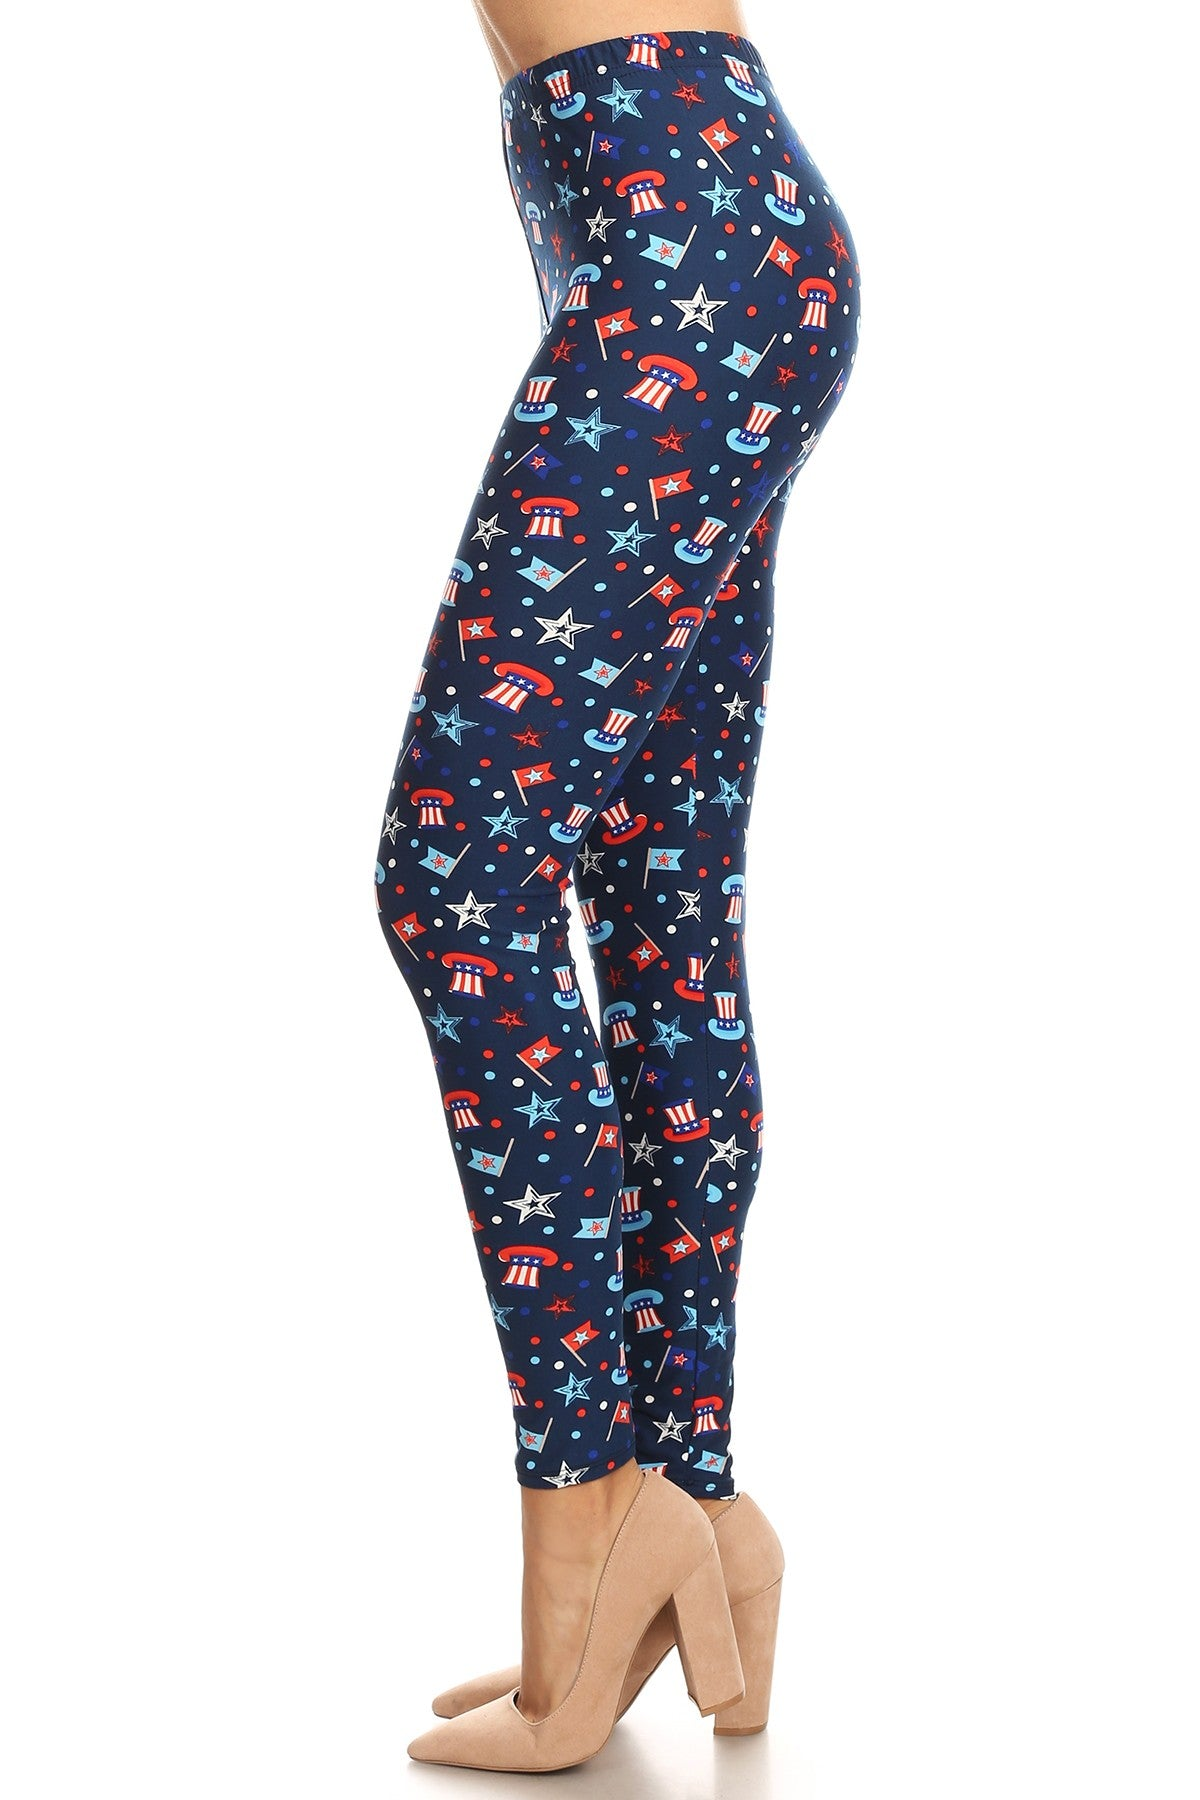 Hats Off America - Women s Plus Size 3X 5X Leggings – Apple Girl ... b77e67a9fe5